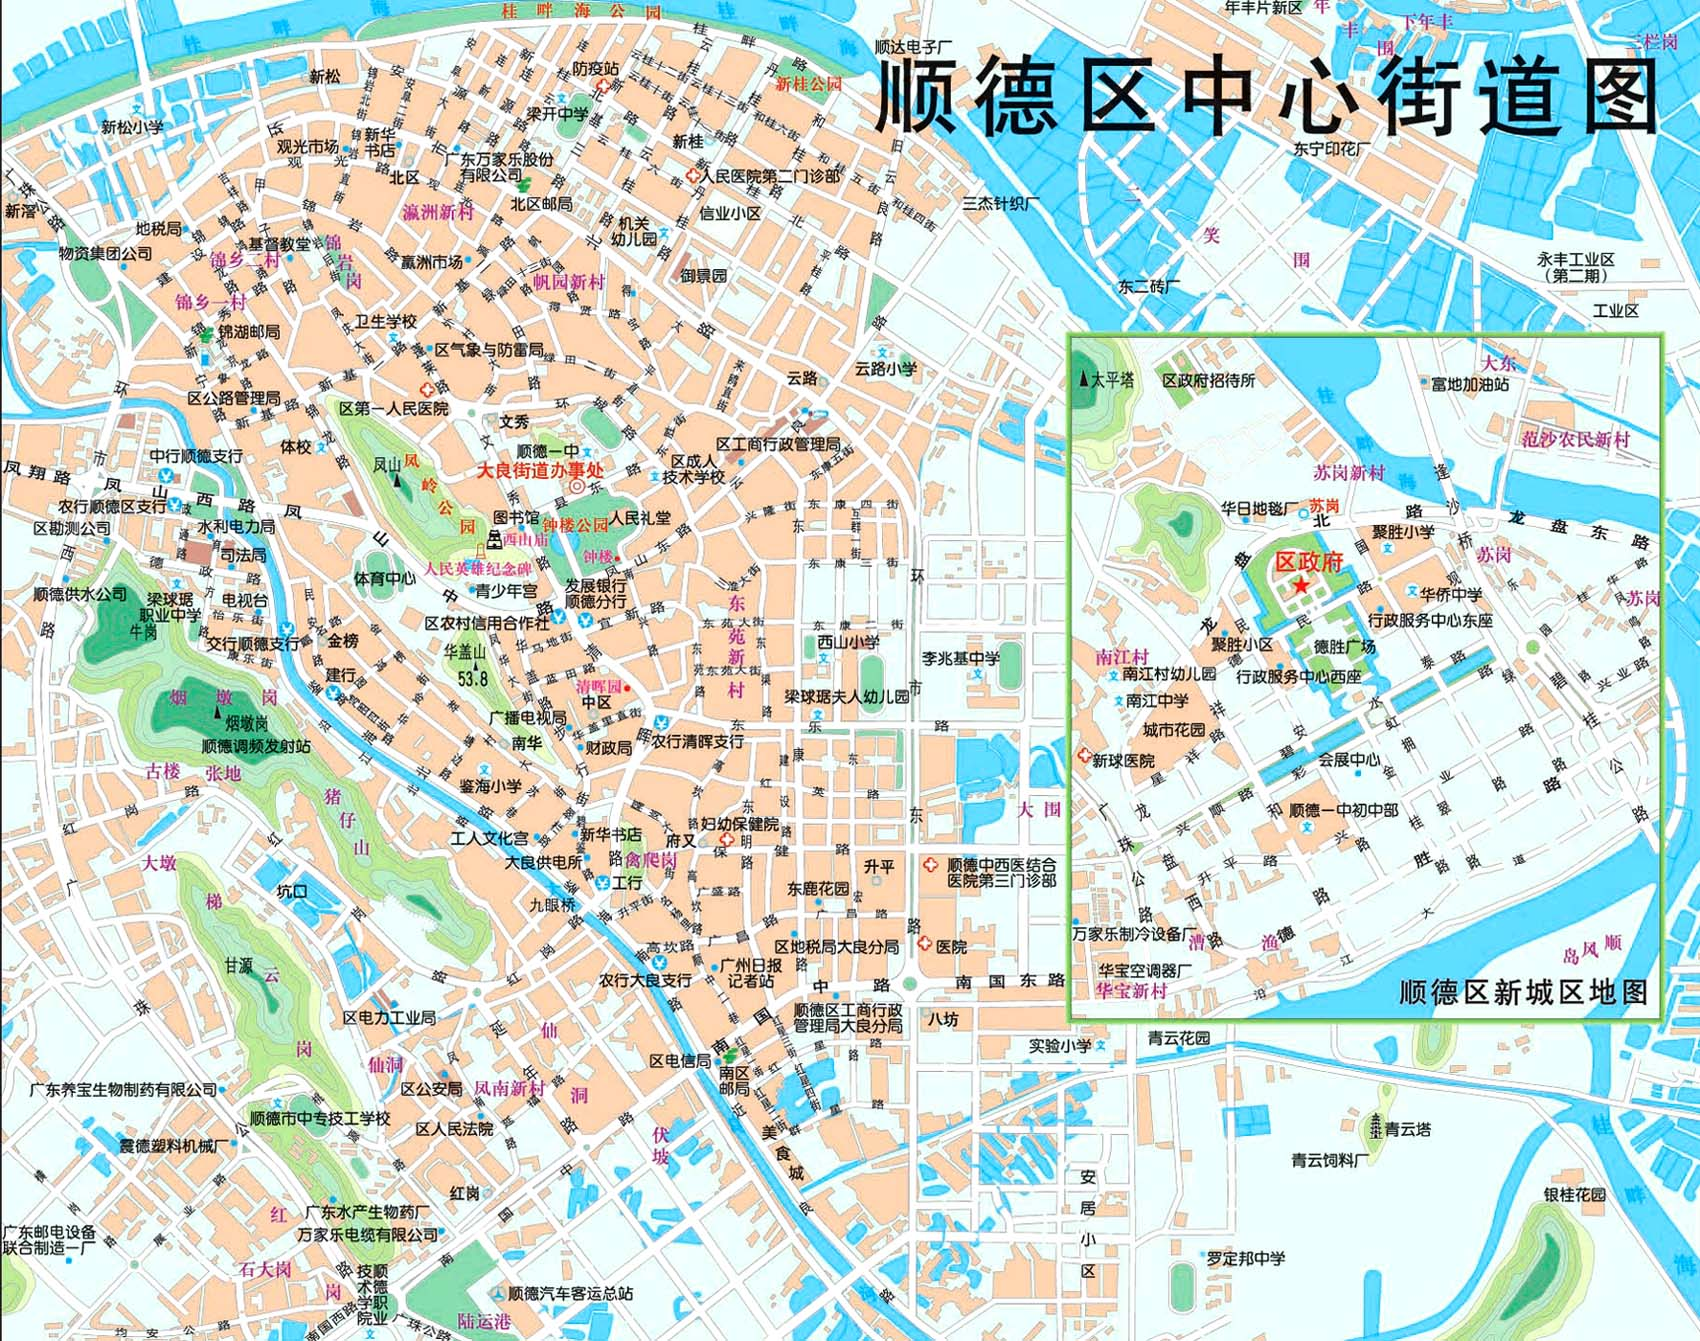 Shunde Tourist Map See map details From shunde-hotels.com